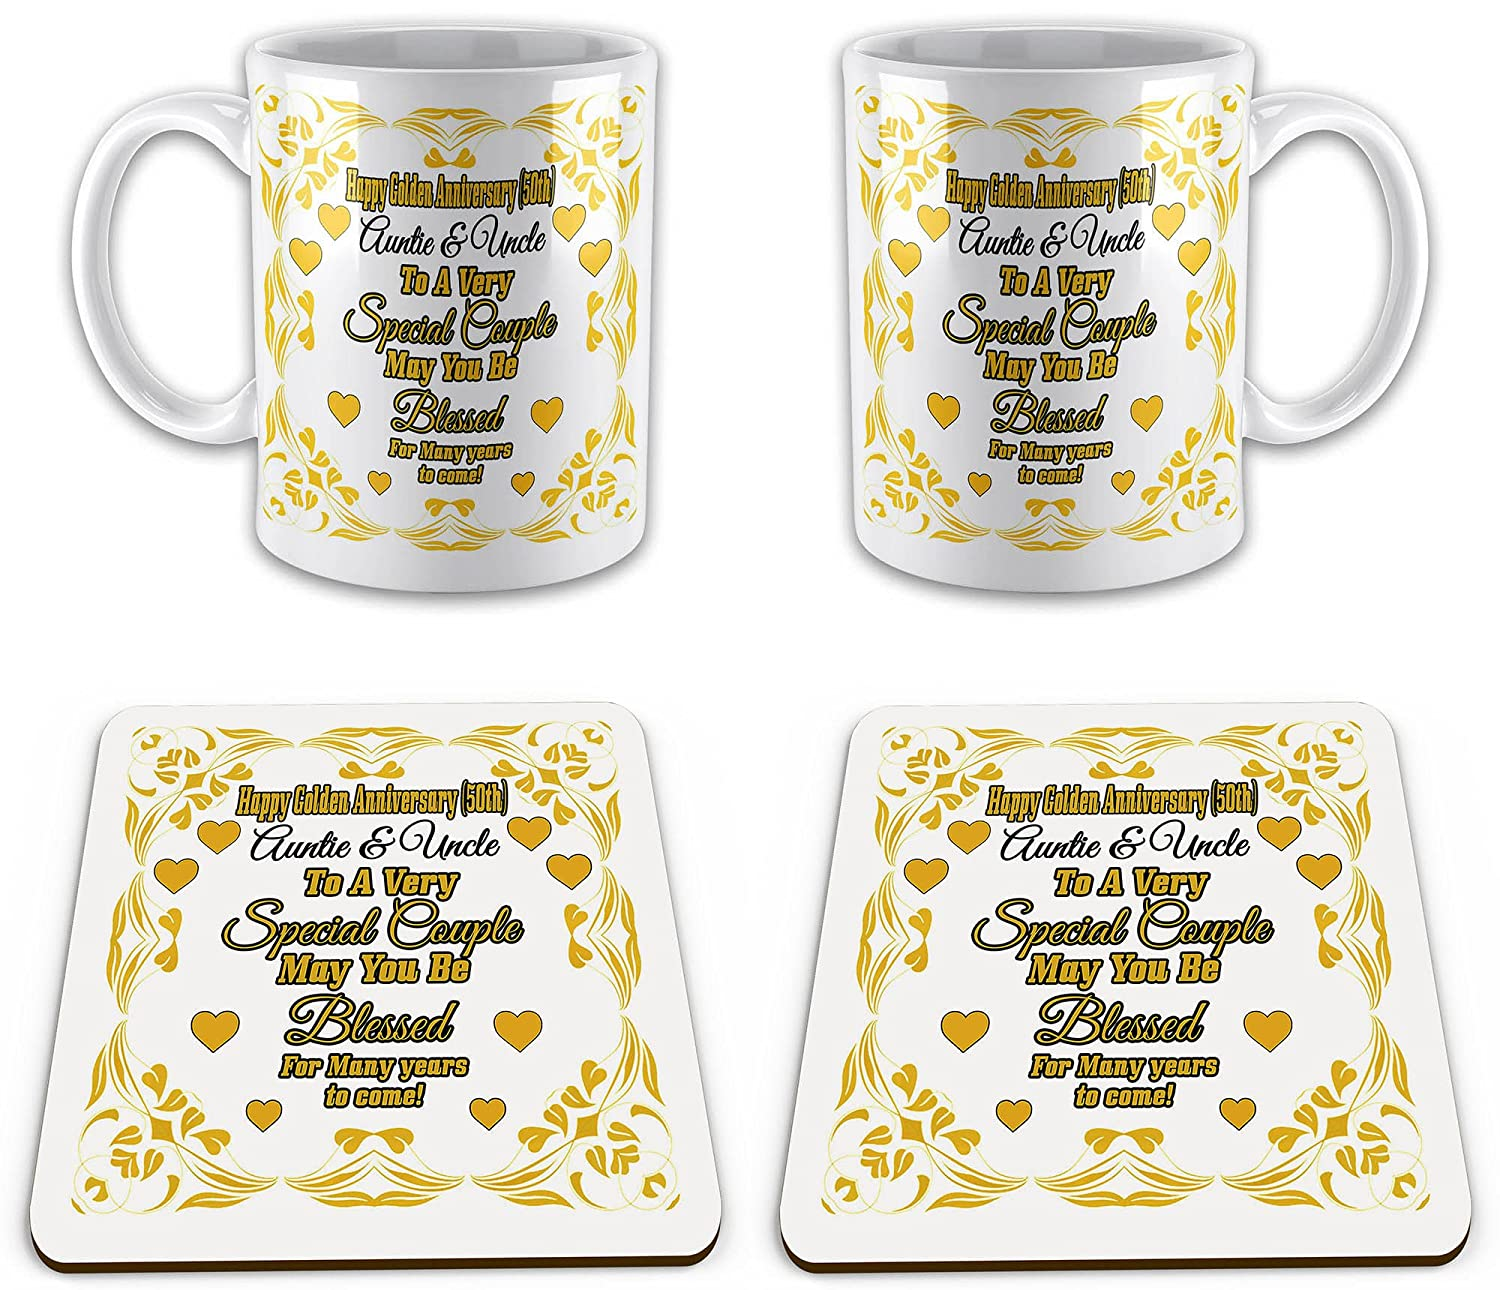 Set of Happy Golden Anniversary Auntie & Uncle (50th) Novelty Gift Mugs & Coasters